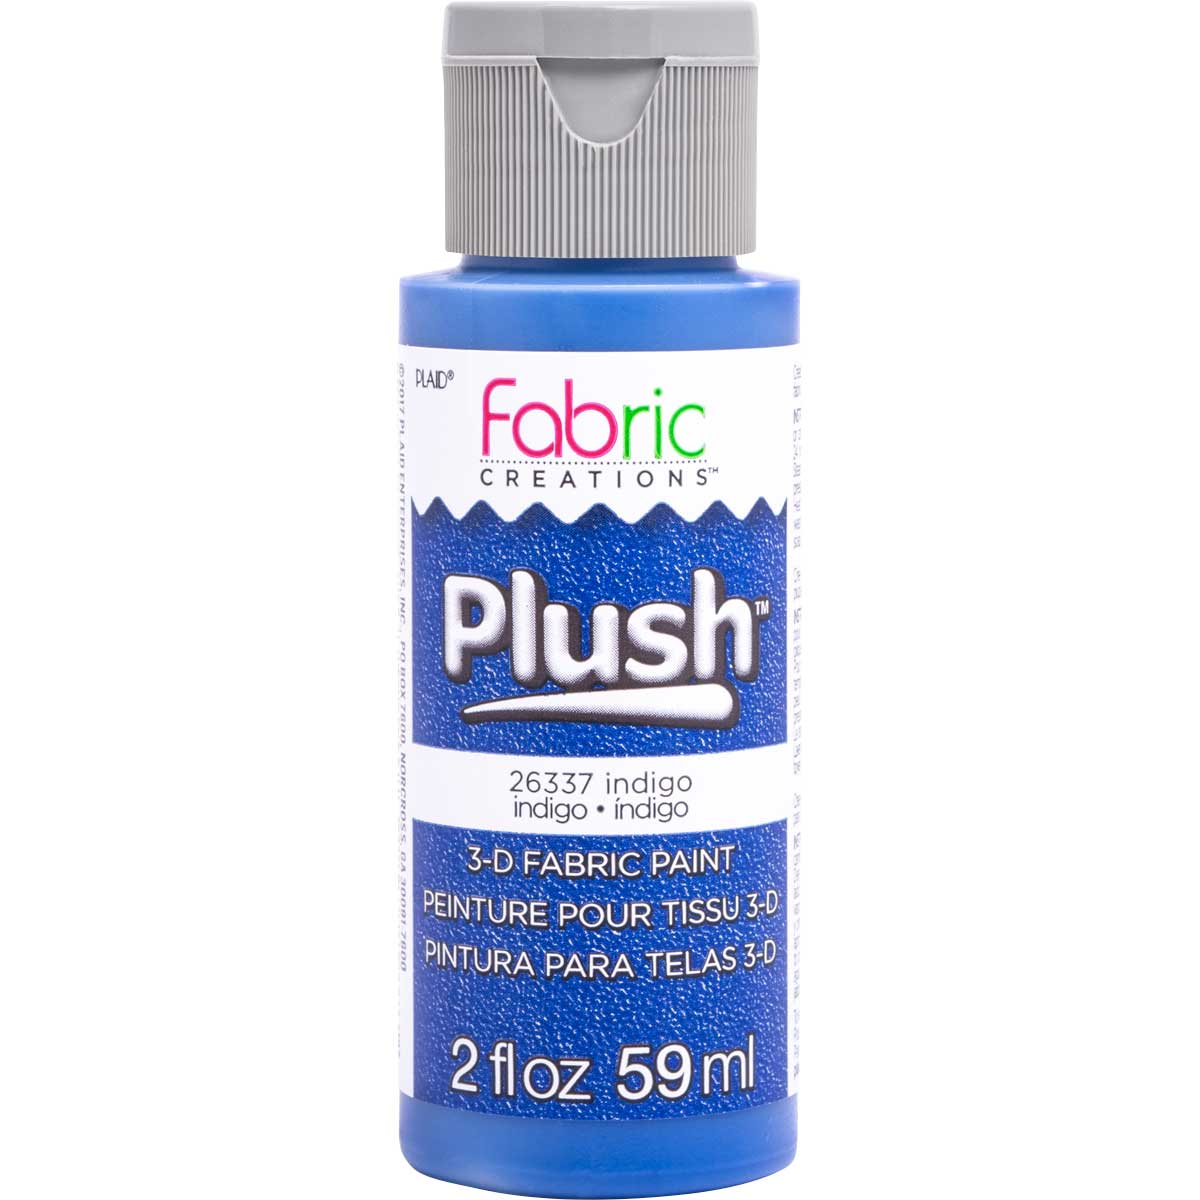 Fabric Creations™ Plush™ 3-D Fabric Paints - Indigo, 2 oz. - 26337